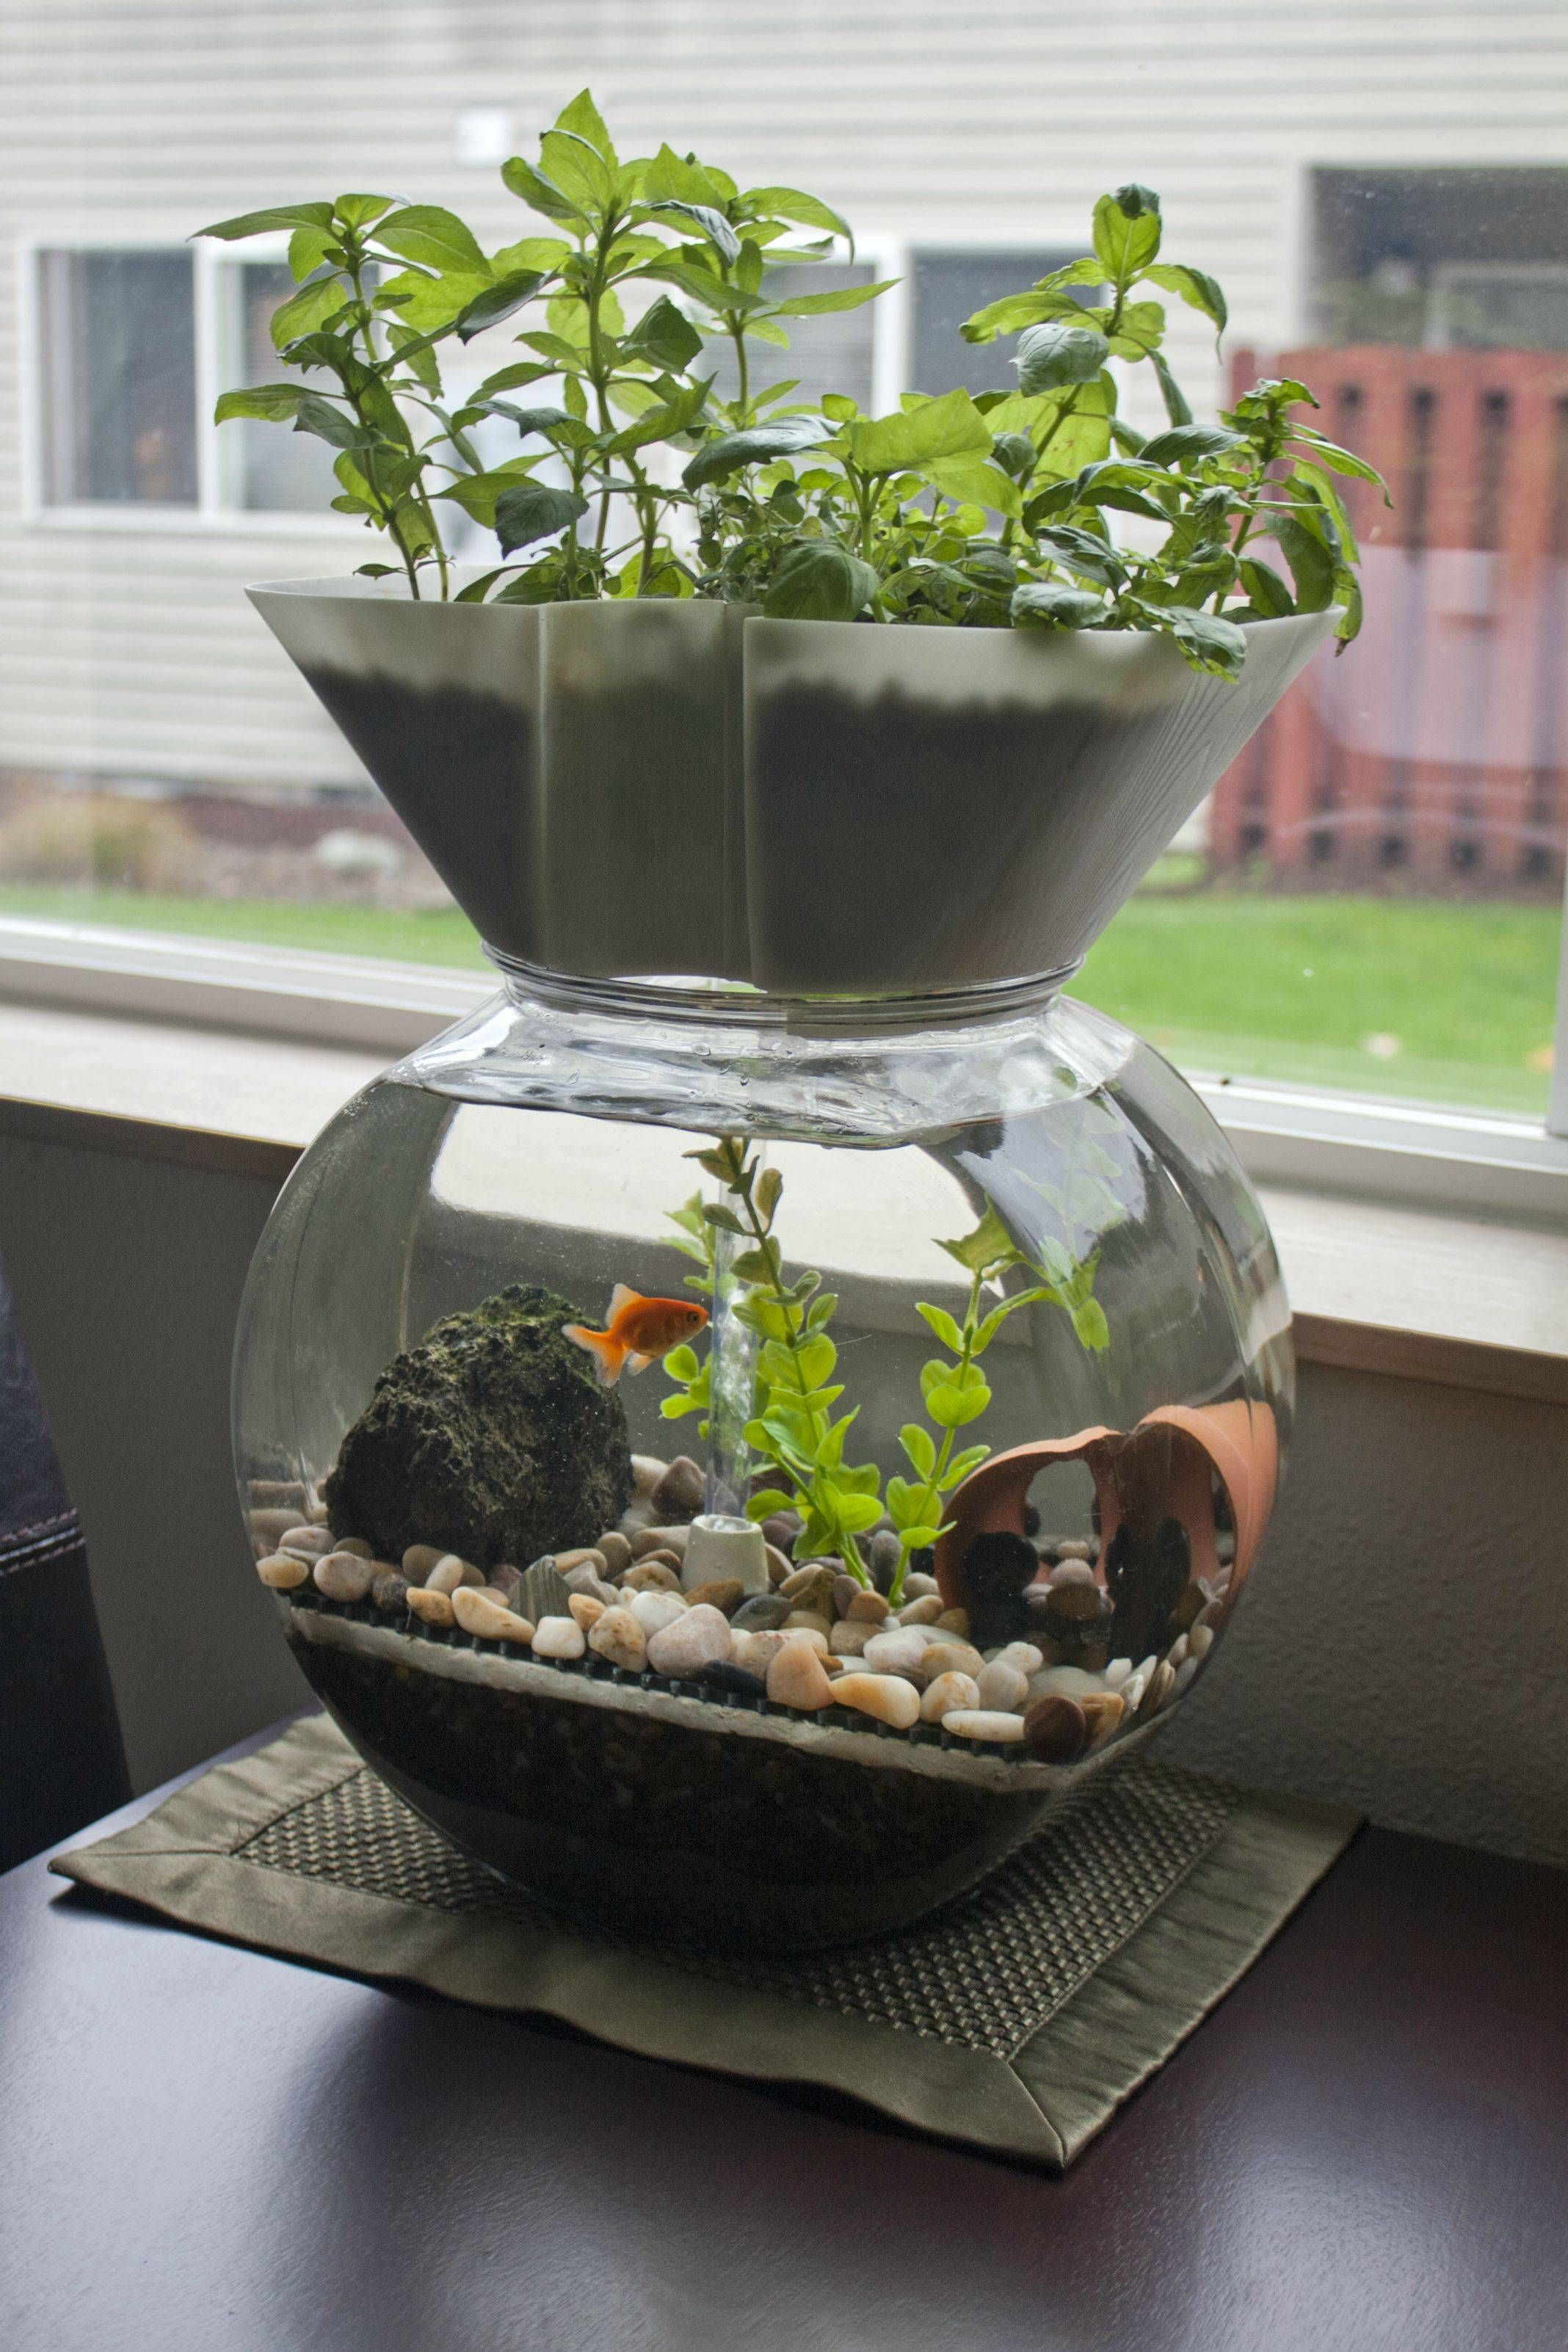 i invented this: the goldfish garden self-cleaning aquaponic